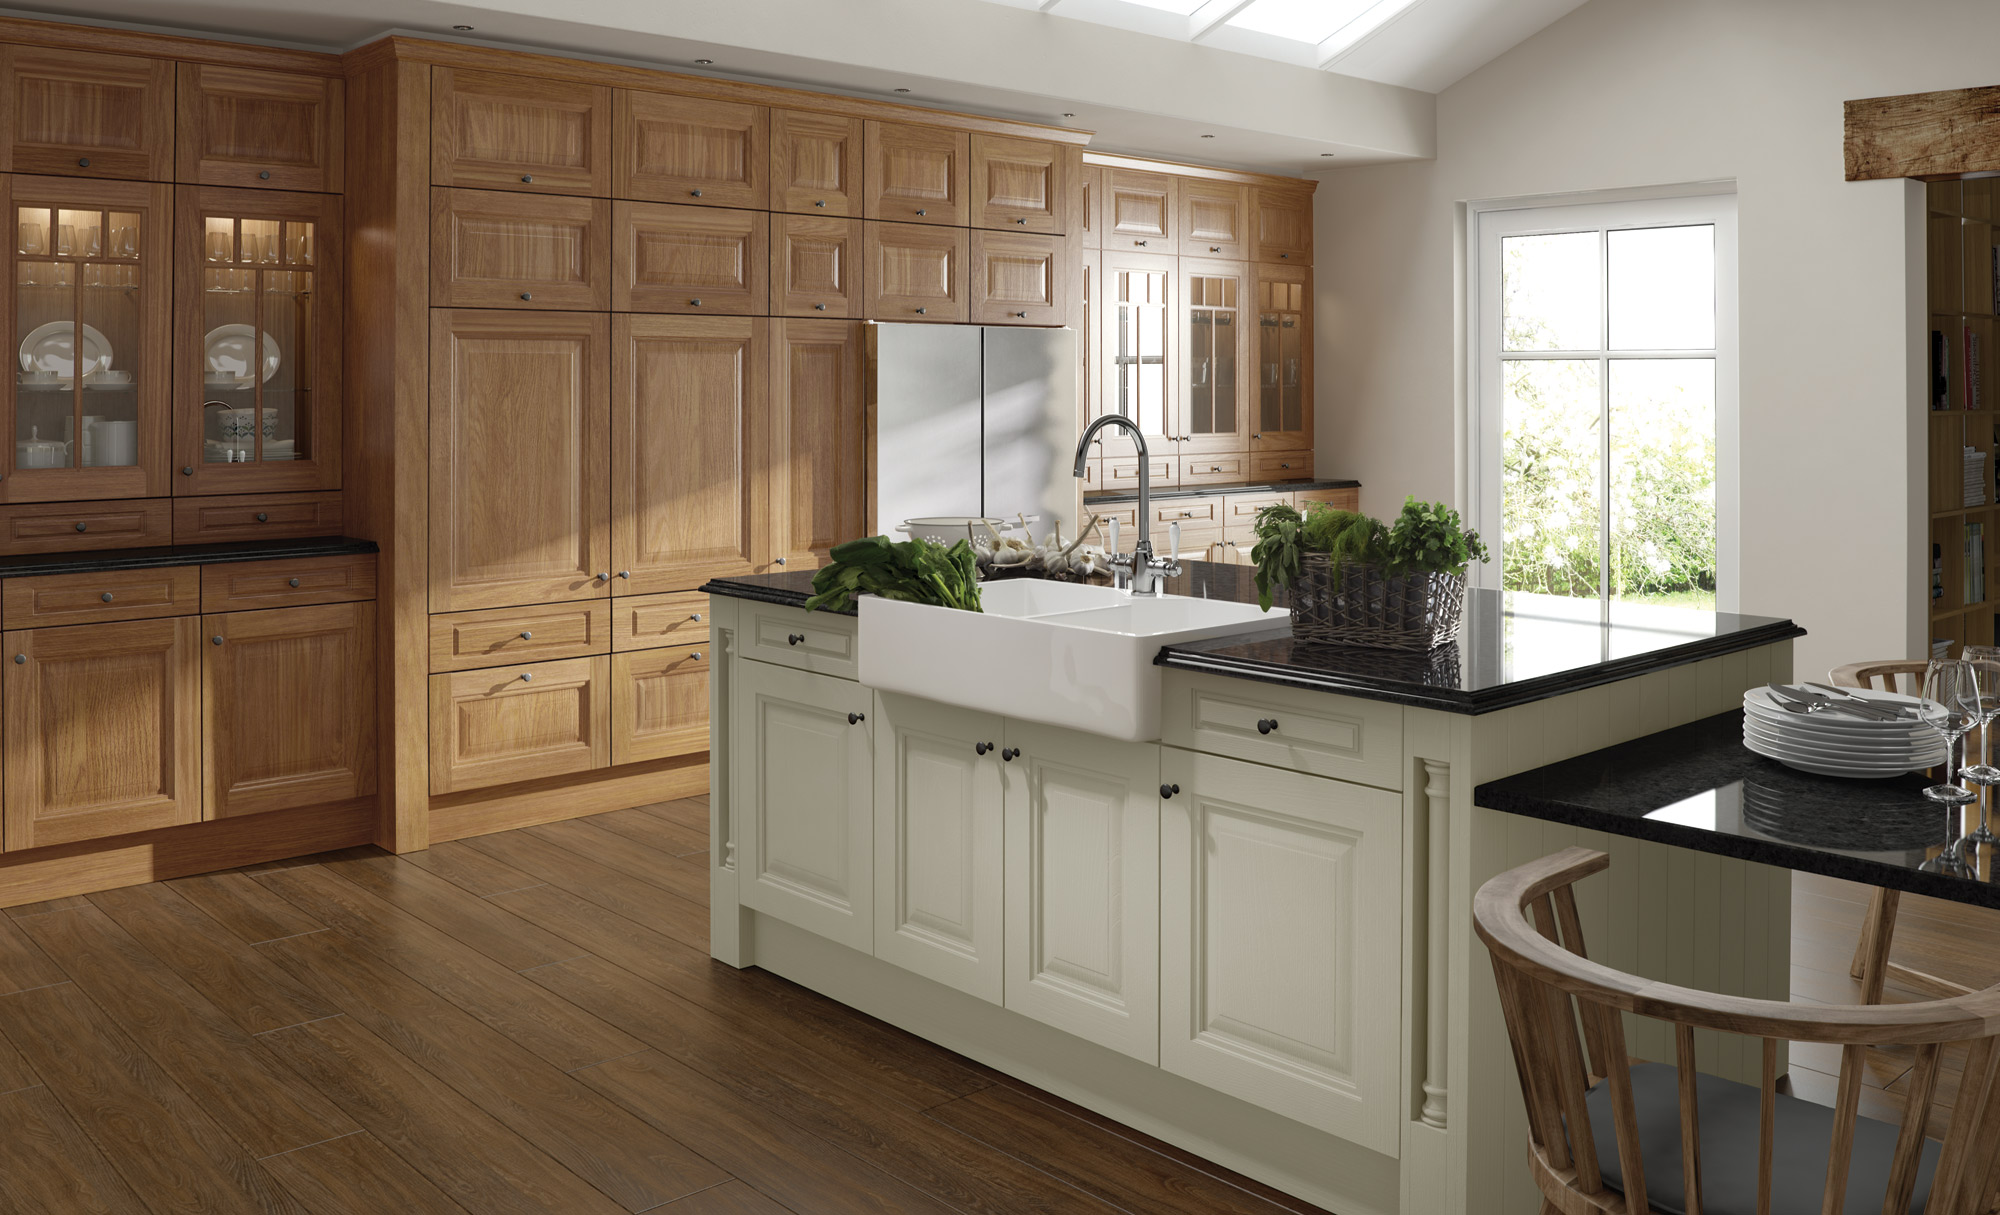 http://www.gurteenkitchens.ie/wp-content/uploads/2018/03/classic-traditional-country-jefferson-oak-painted-ivory-kitchen-hero-1.jpg